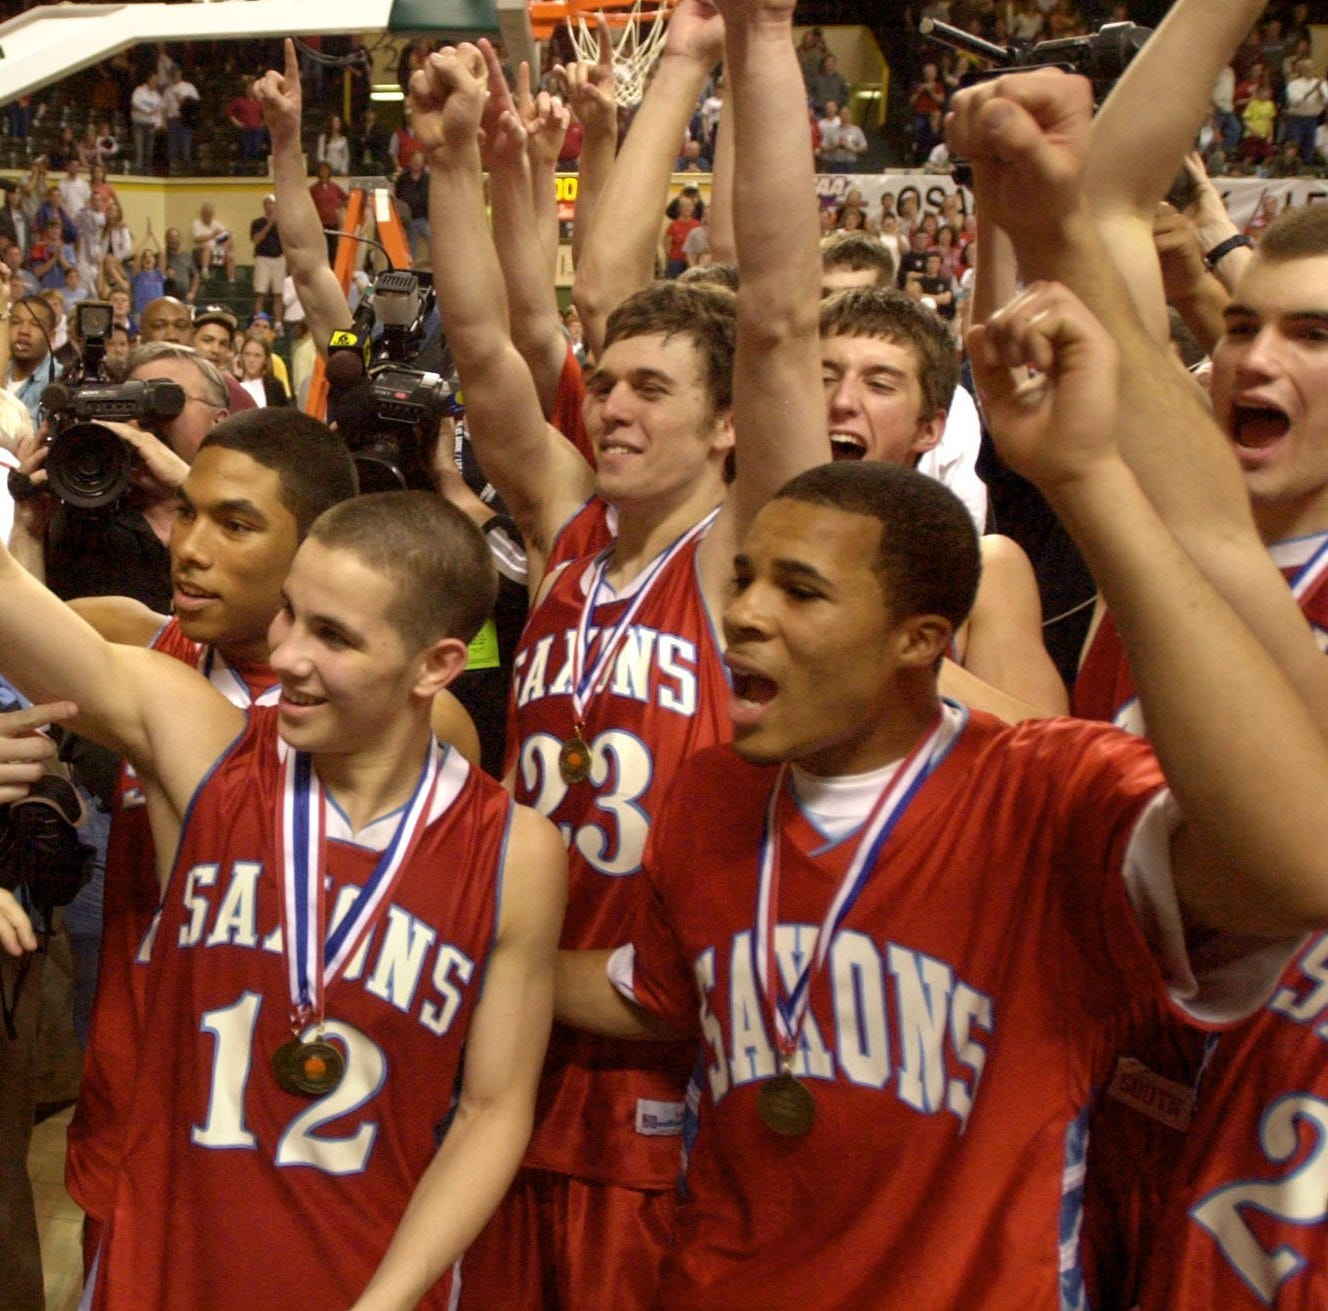 2004 South Salem Saxons: Remembering Salem-Keizer's last boys basketball state title